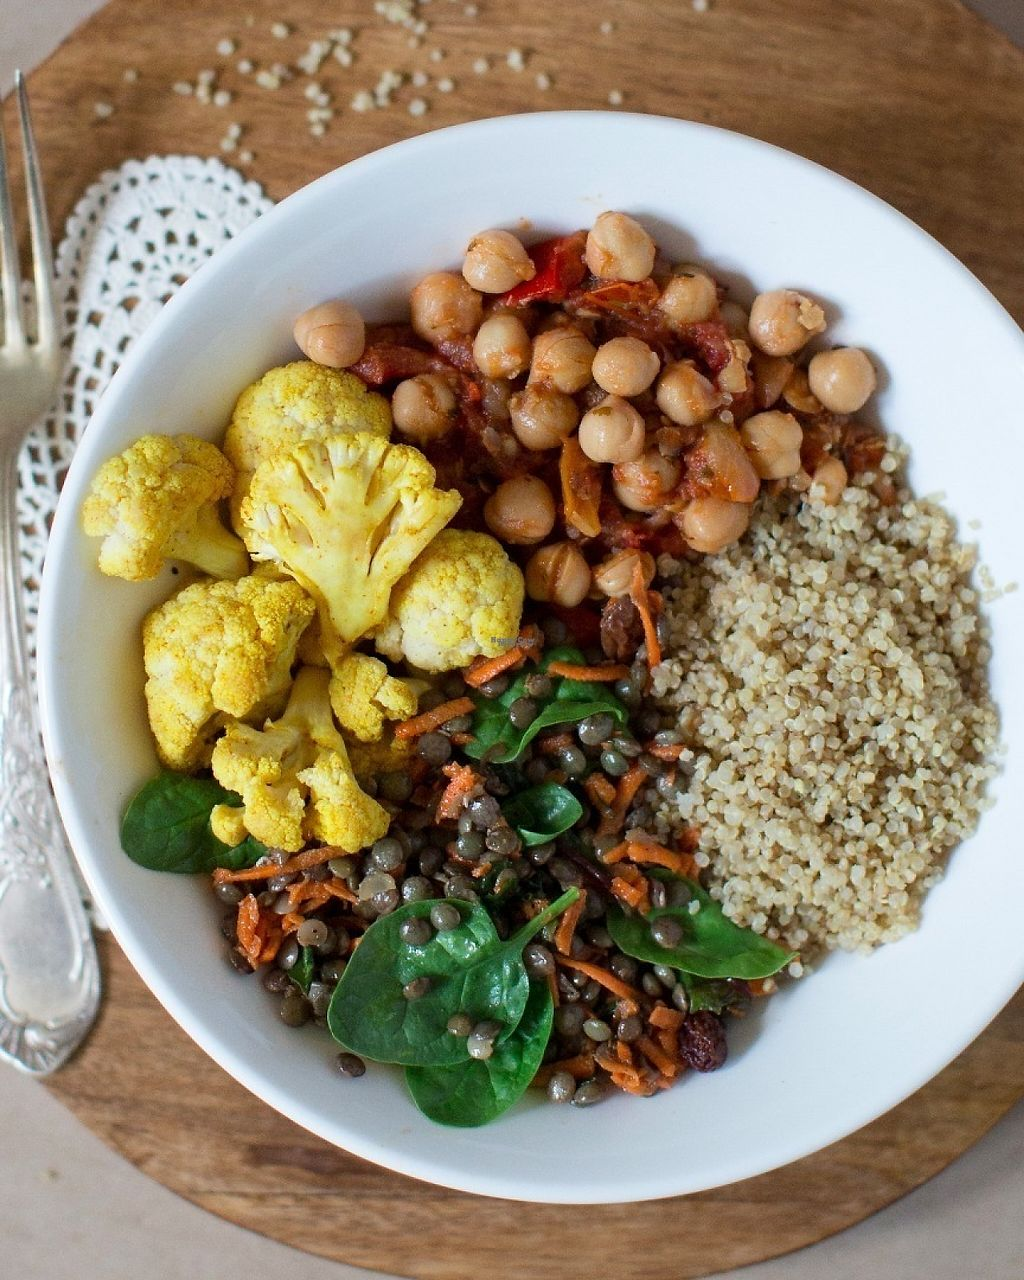 "Photo of Two Tablespoons  by <a href=""/members/profile/TwoTablespoons"">TwoTablespoons</a> <br/>Shanti Express Macro Bowl: - Chickpea Stew - Quinoa - Curried Cauliflower - Lentil and Kale Salad <br/> December 6, 2016  - <a href='/contact/abuse/image/83678/197949'>Report</a>"